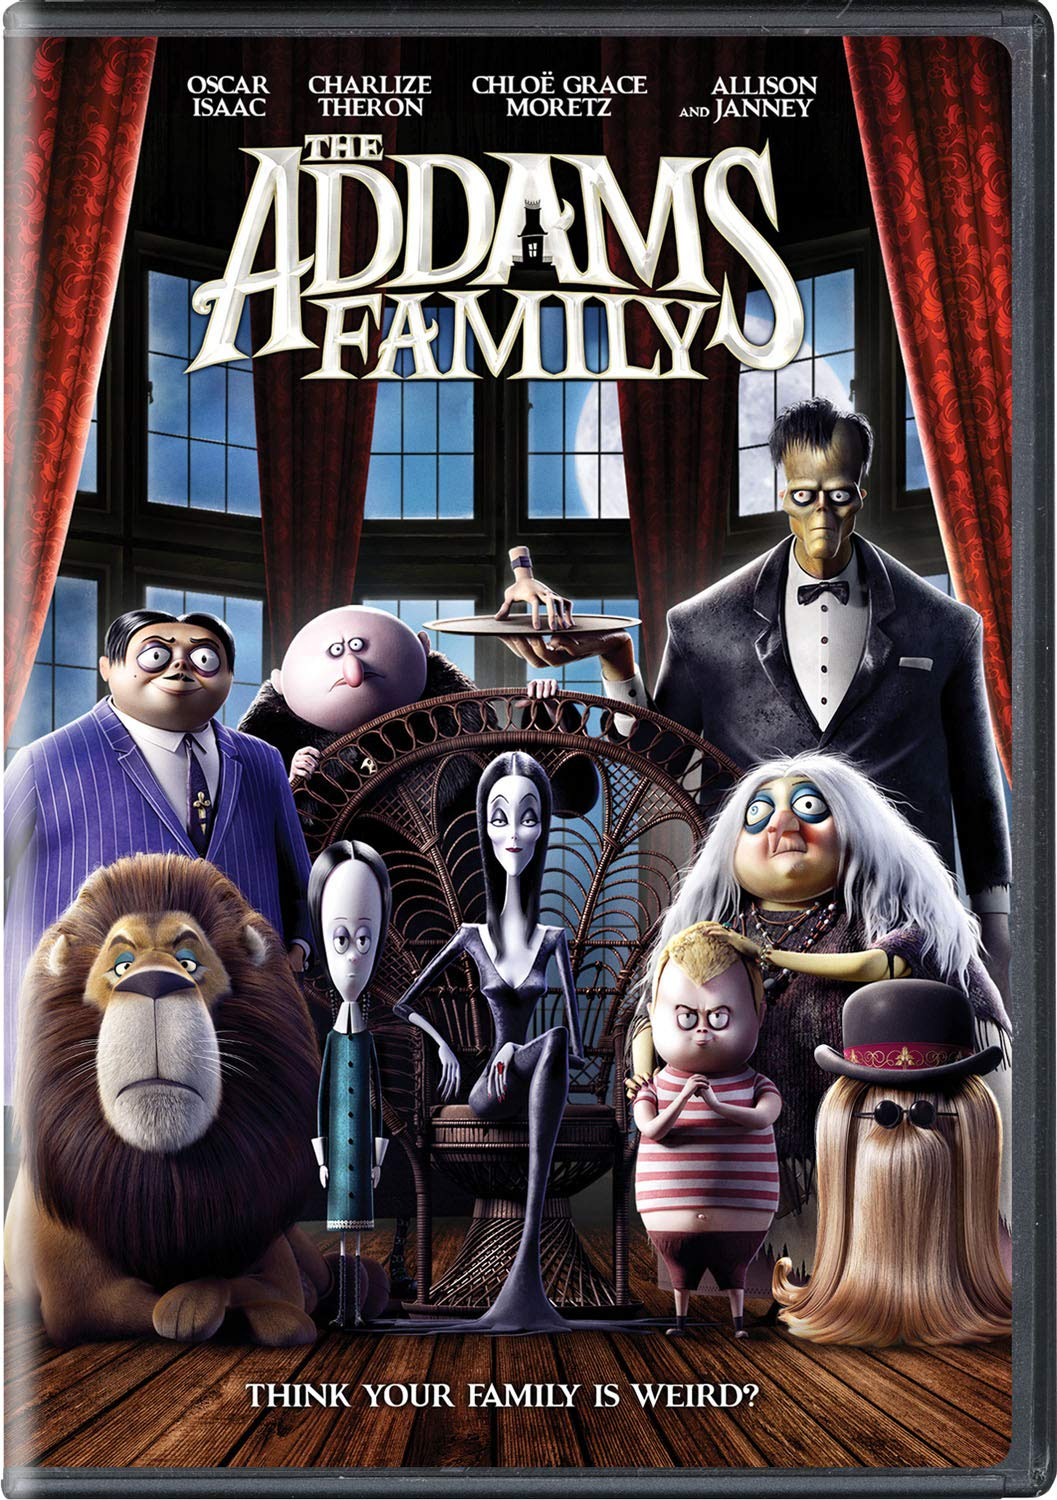 The Addams Family [Movie] - The Addams Family: Animated | Waterloo ...